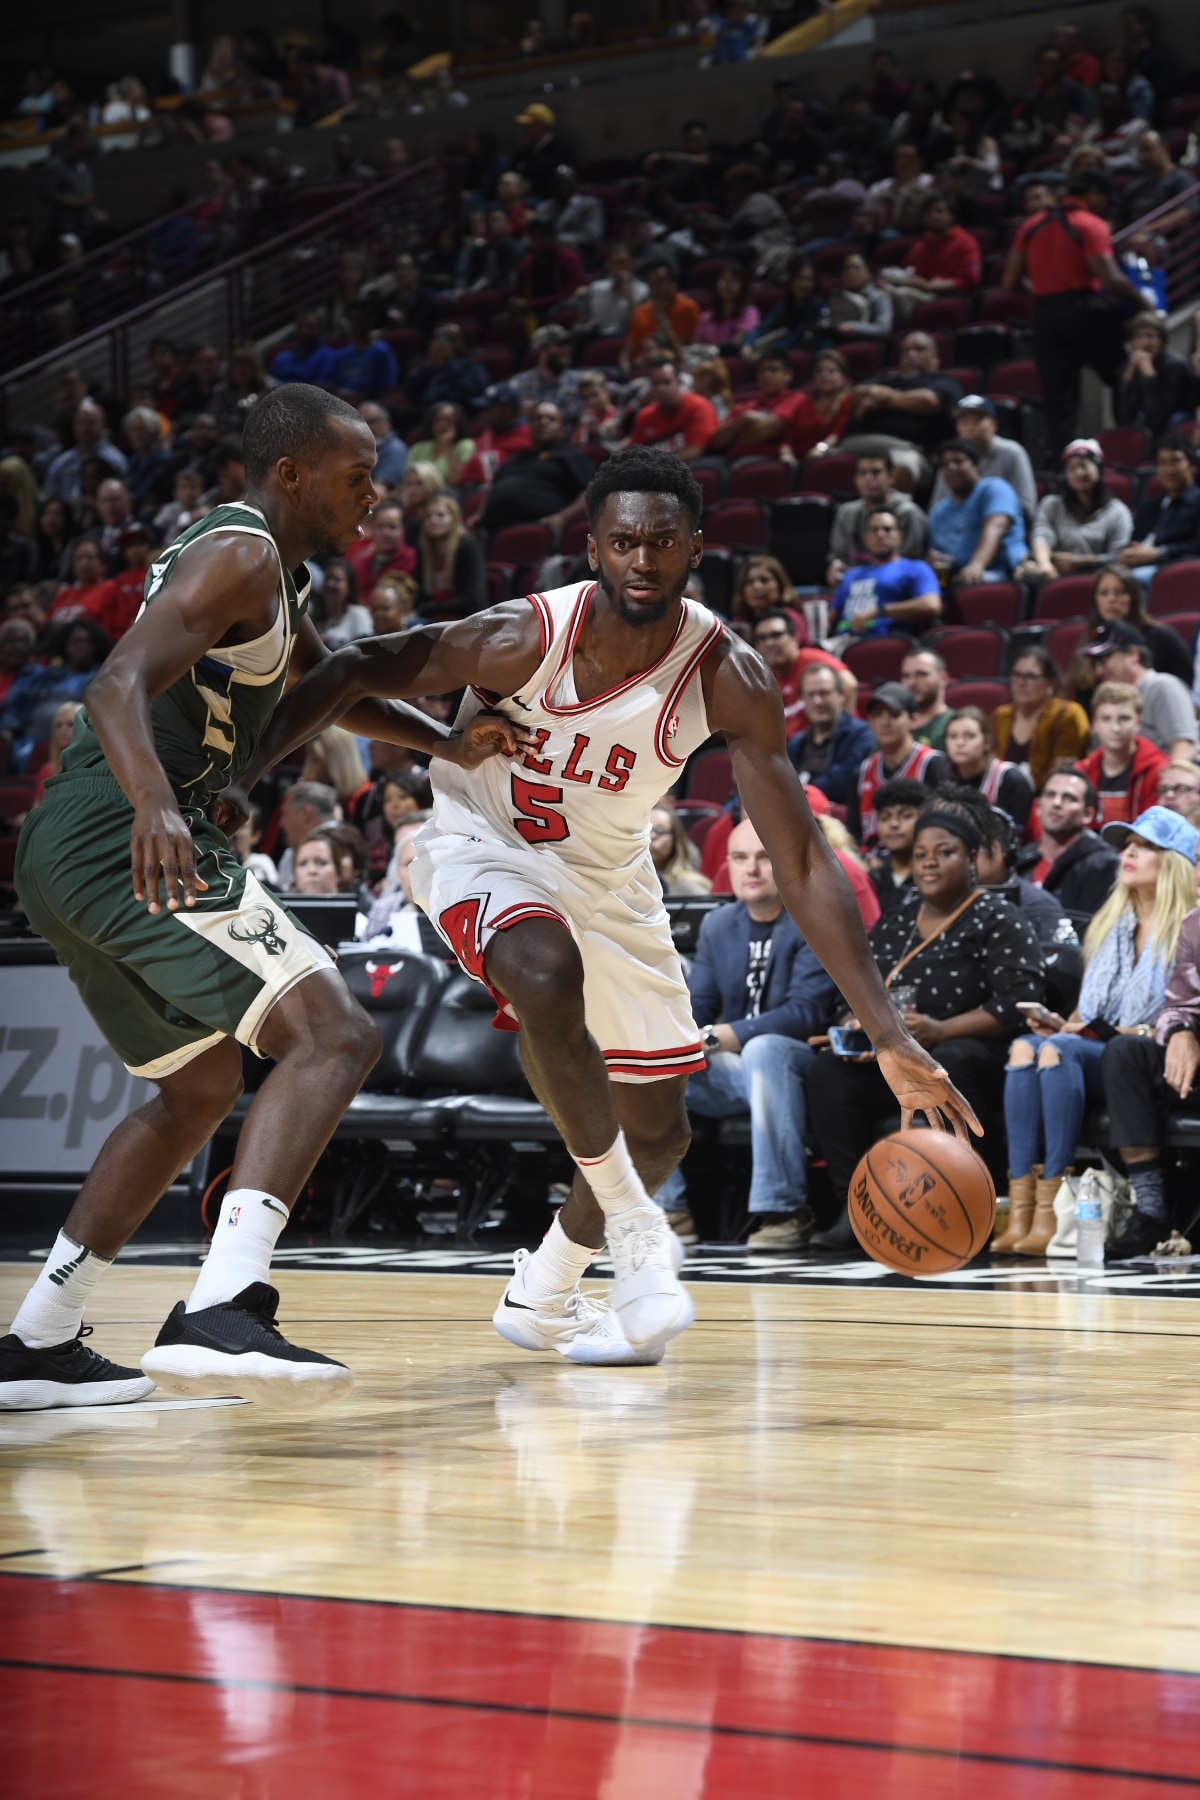 Bobby Portis of the Chicago Bulls dribbling against players of the Milwaukee Bucks, October 6, 2017 at the United Center.